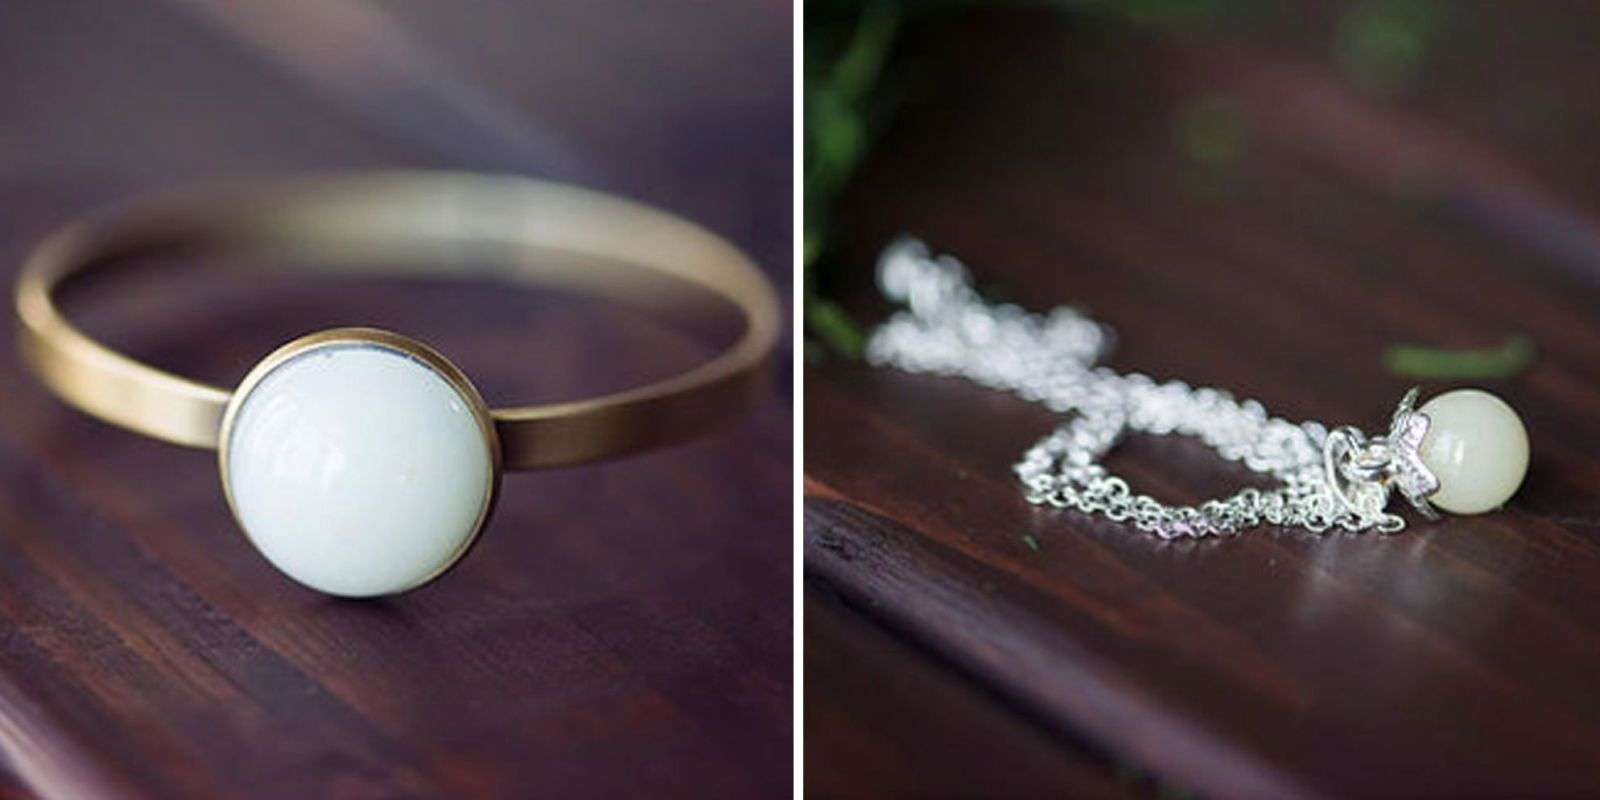 You Can Now Get Jewelry Keepsakes Made From Breast Milk